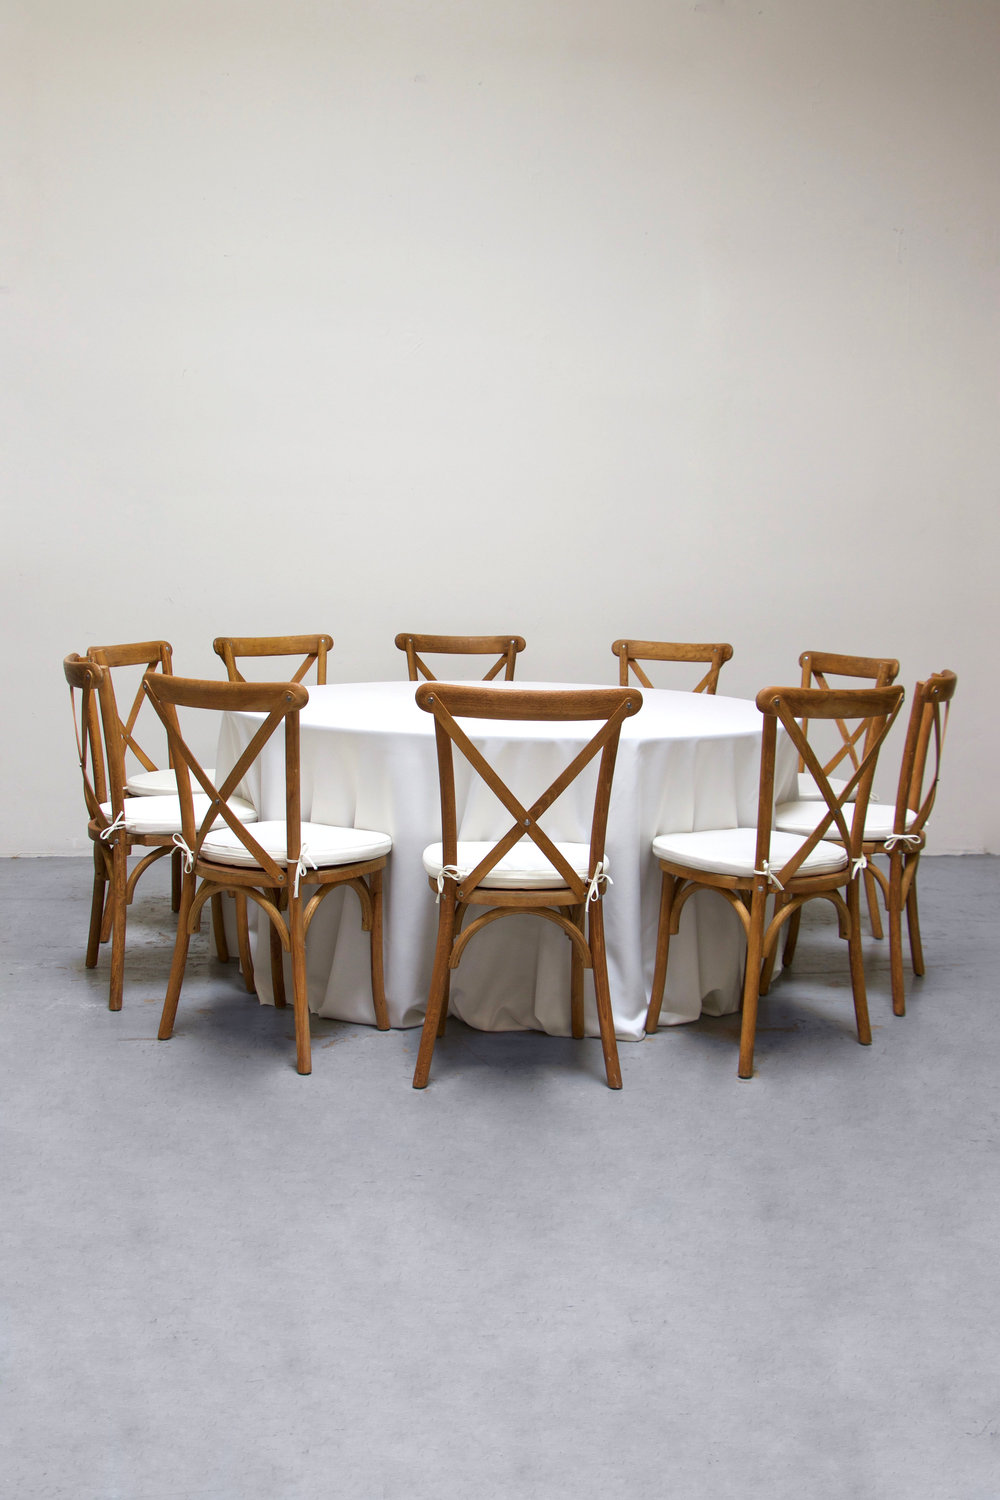 $100 1 Round Banquet w/ 10 Cross-Back Chairs